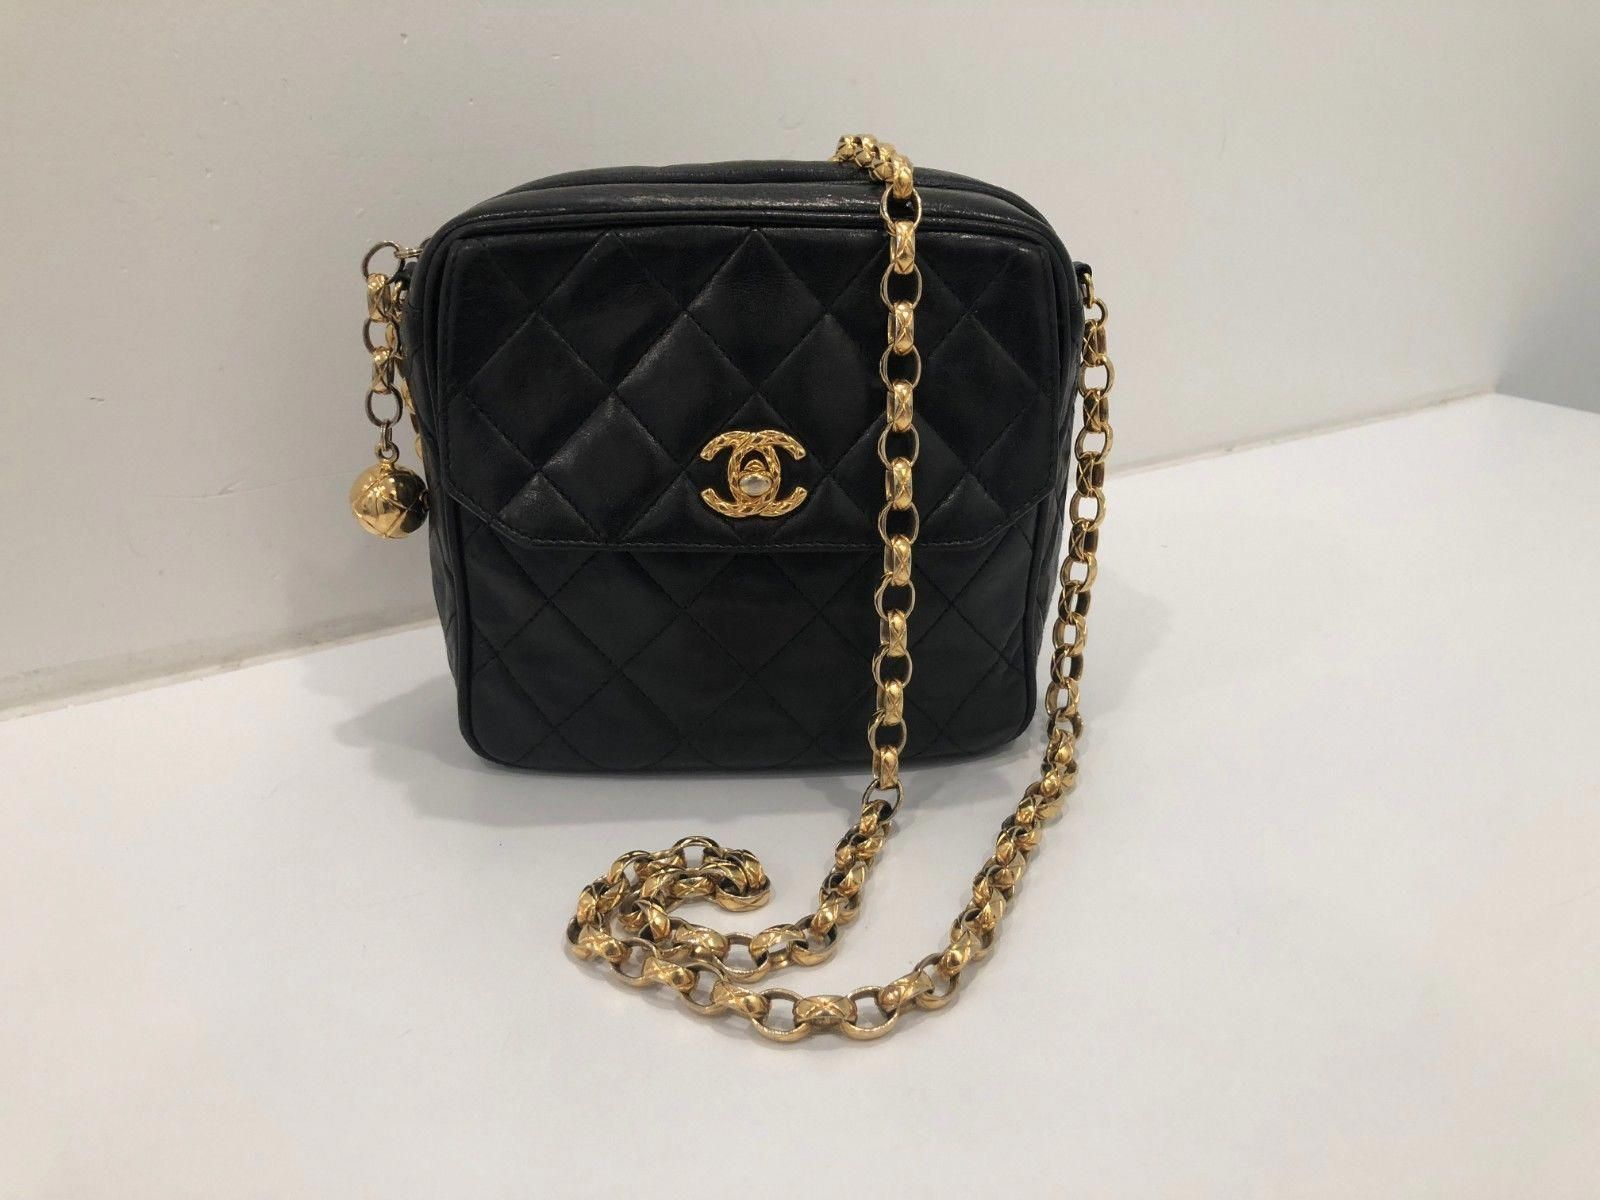 Vintage CHANEL Quilted Black Lambskin Mini Square Crossbody Bag   Chanelhandbags d04c9f62d0f3f